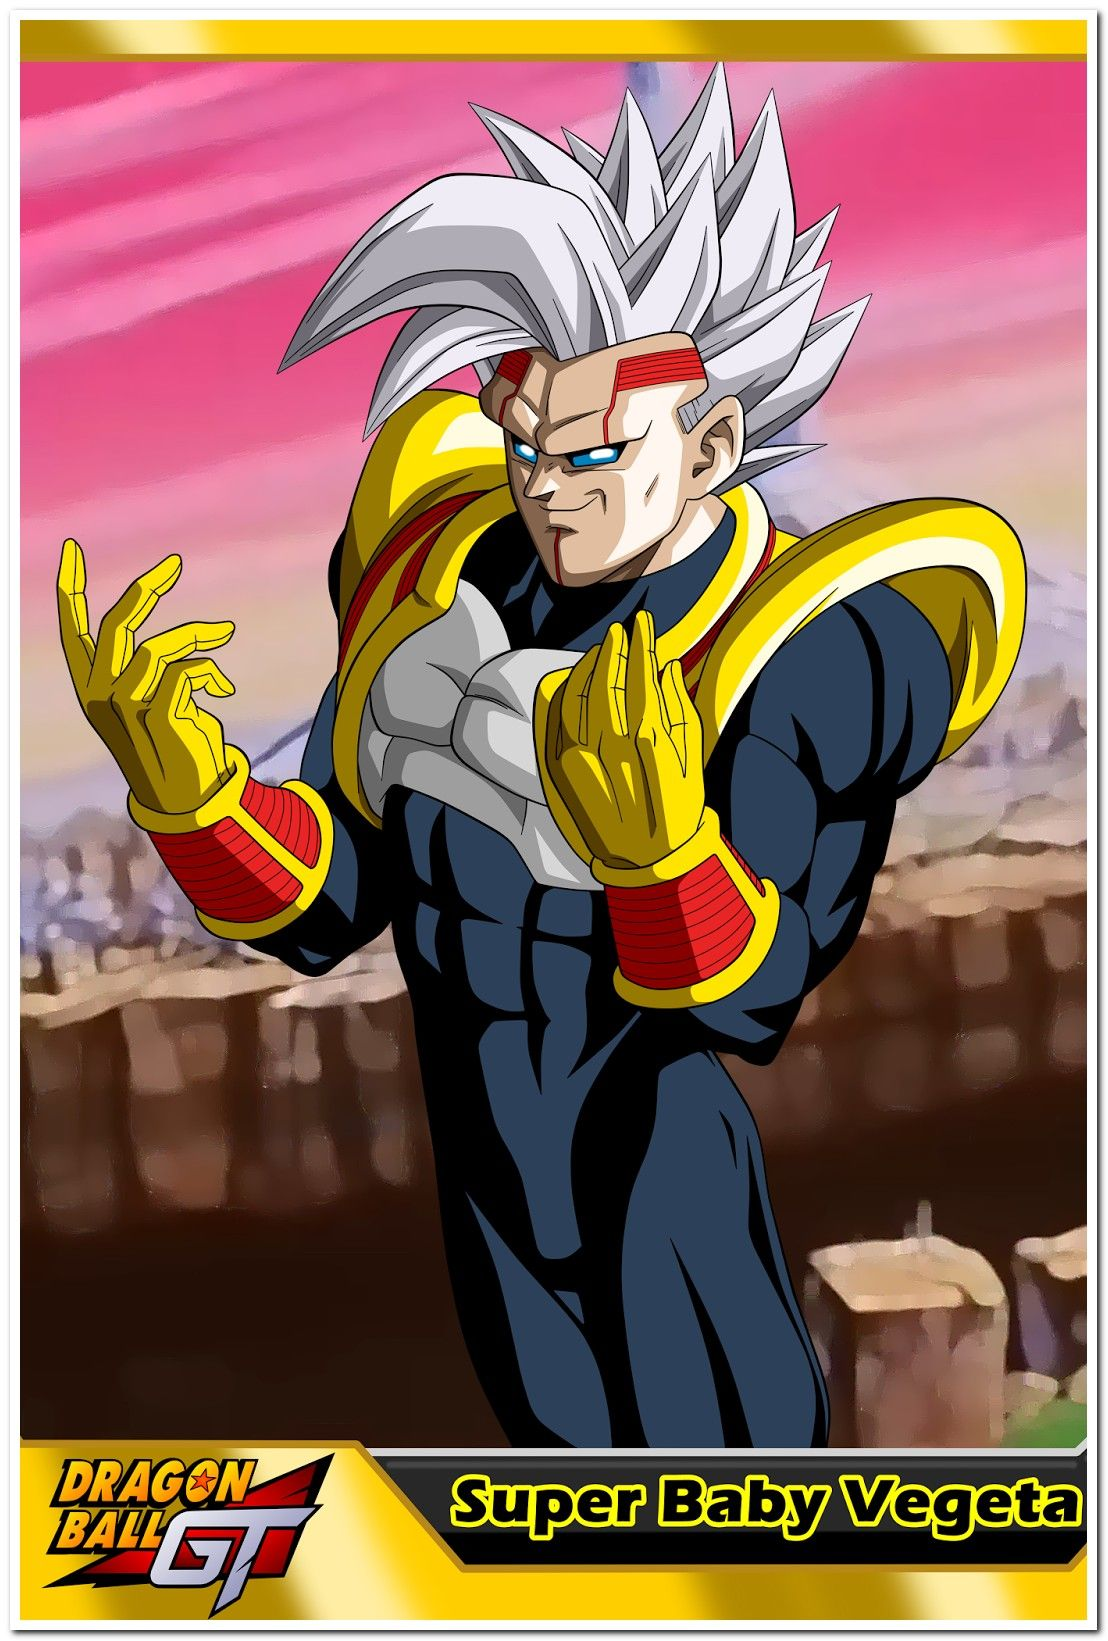 Dragon Ball Gt Super Baby Vegeta In 2020 Baby Vegeta Anime Dragon Ball Super Anime Dragon Ball